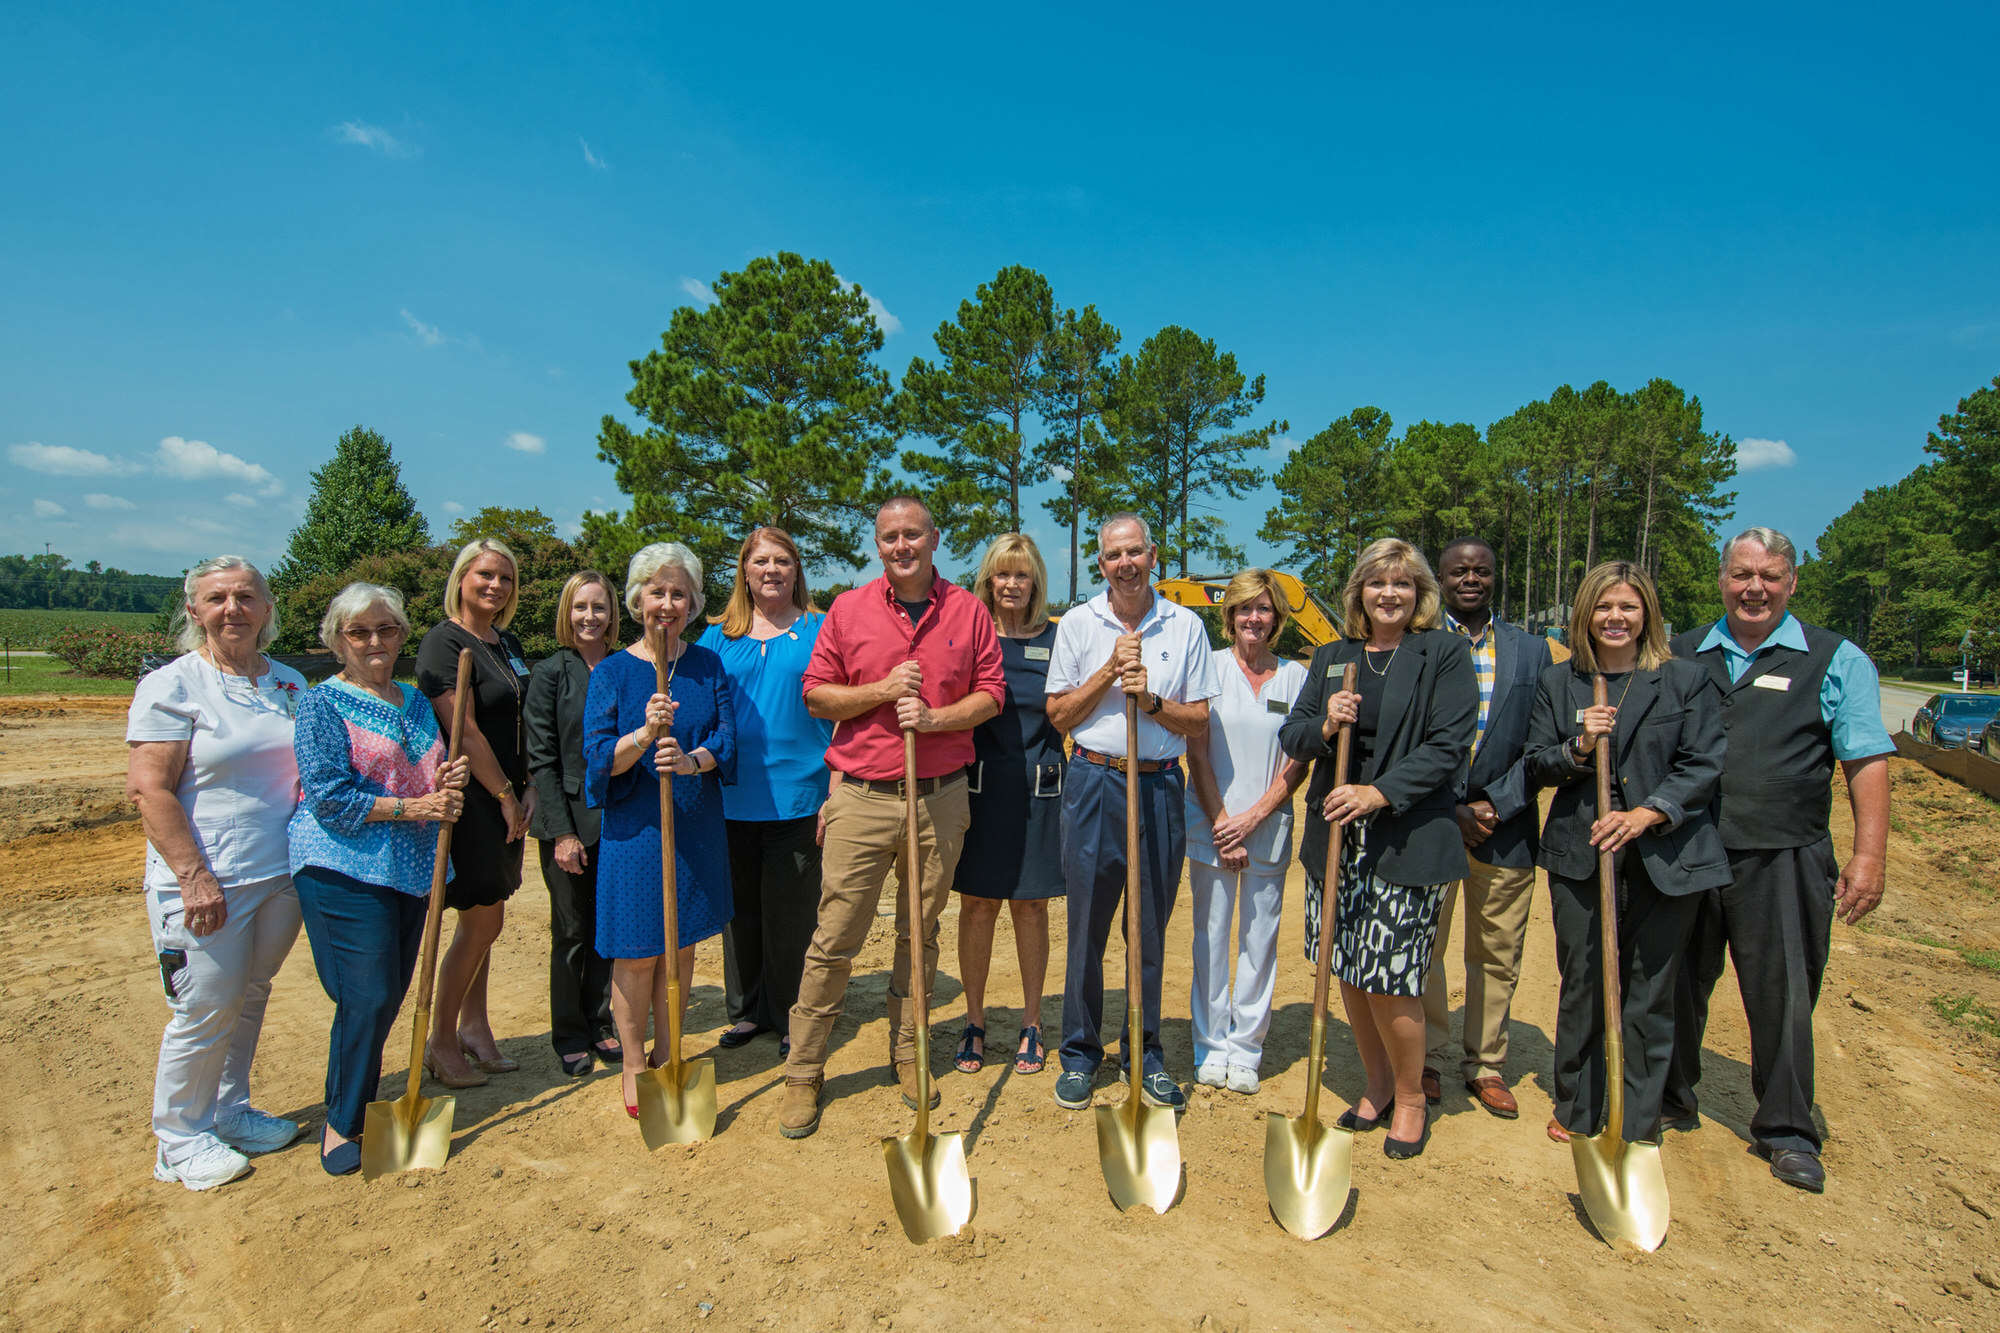 The Manor Senior Living broke ground on a new 3,200-square-foot club house